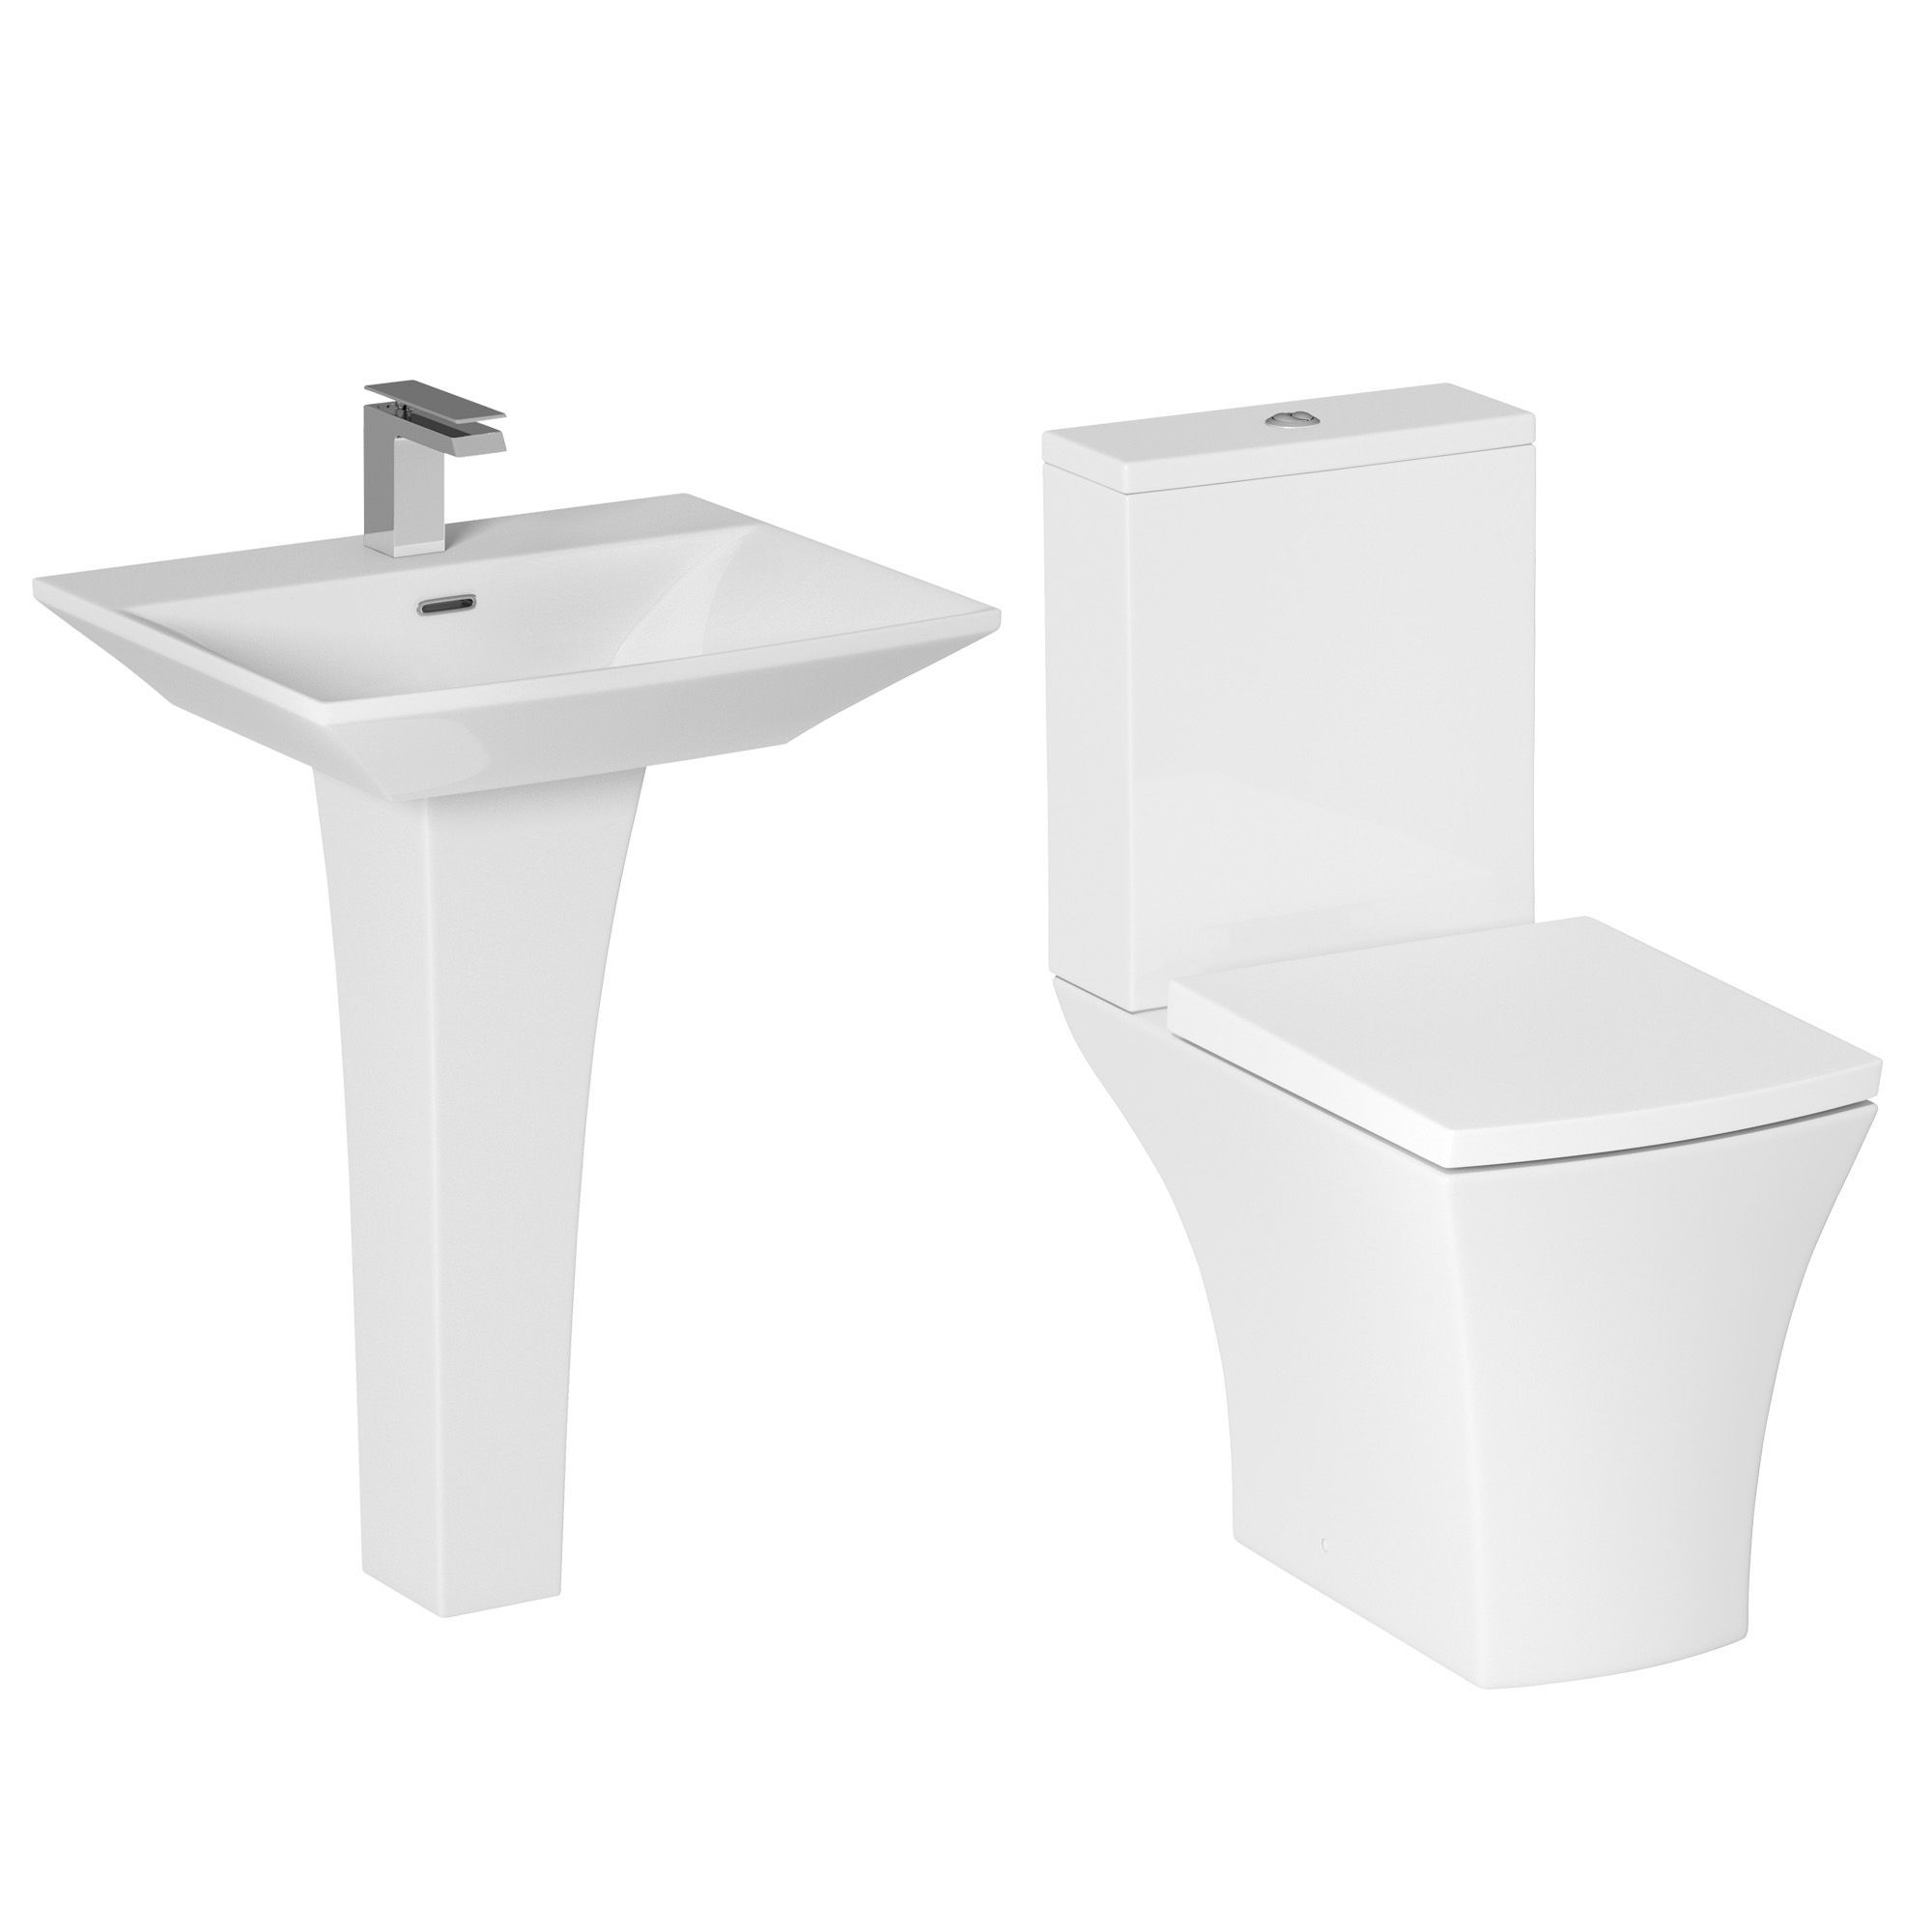 white bathroom mayfair cheviotproducts with i wayfairi metal mini top overflowh overflow reviews larger view biscuith pedestal sink cheviot console farnham small